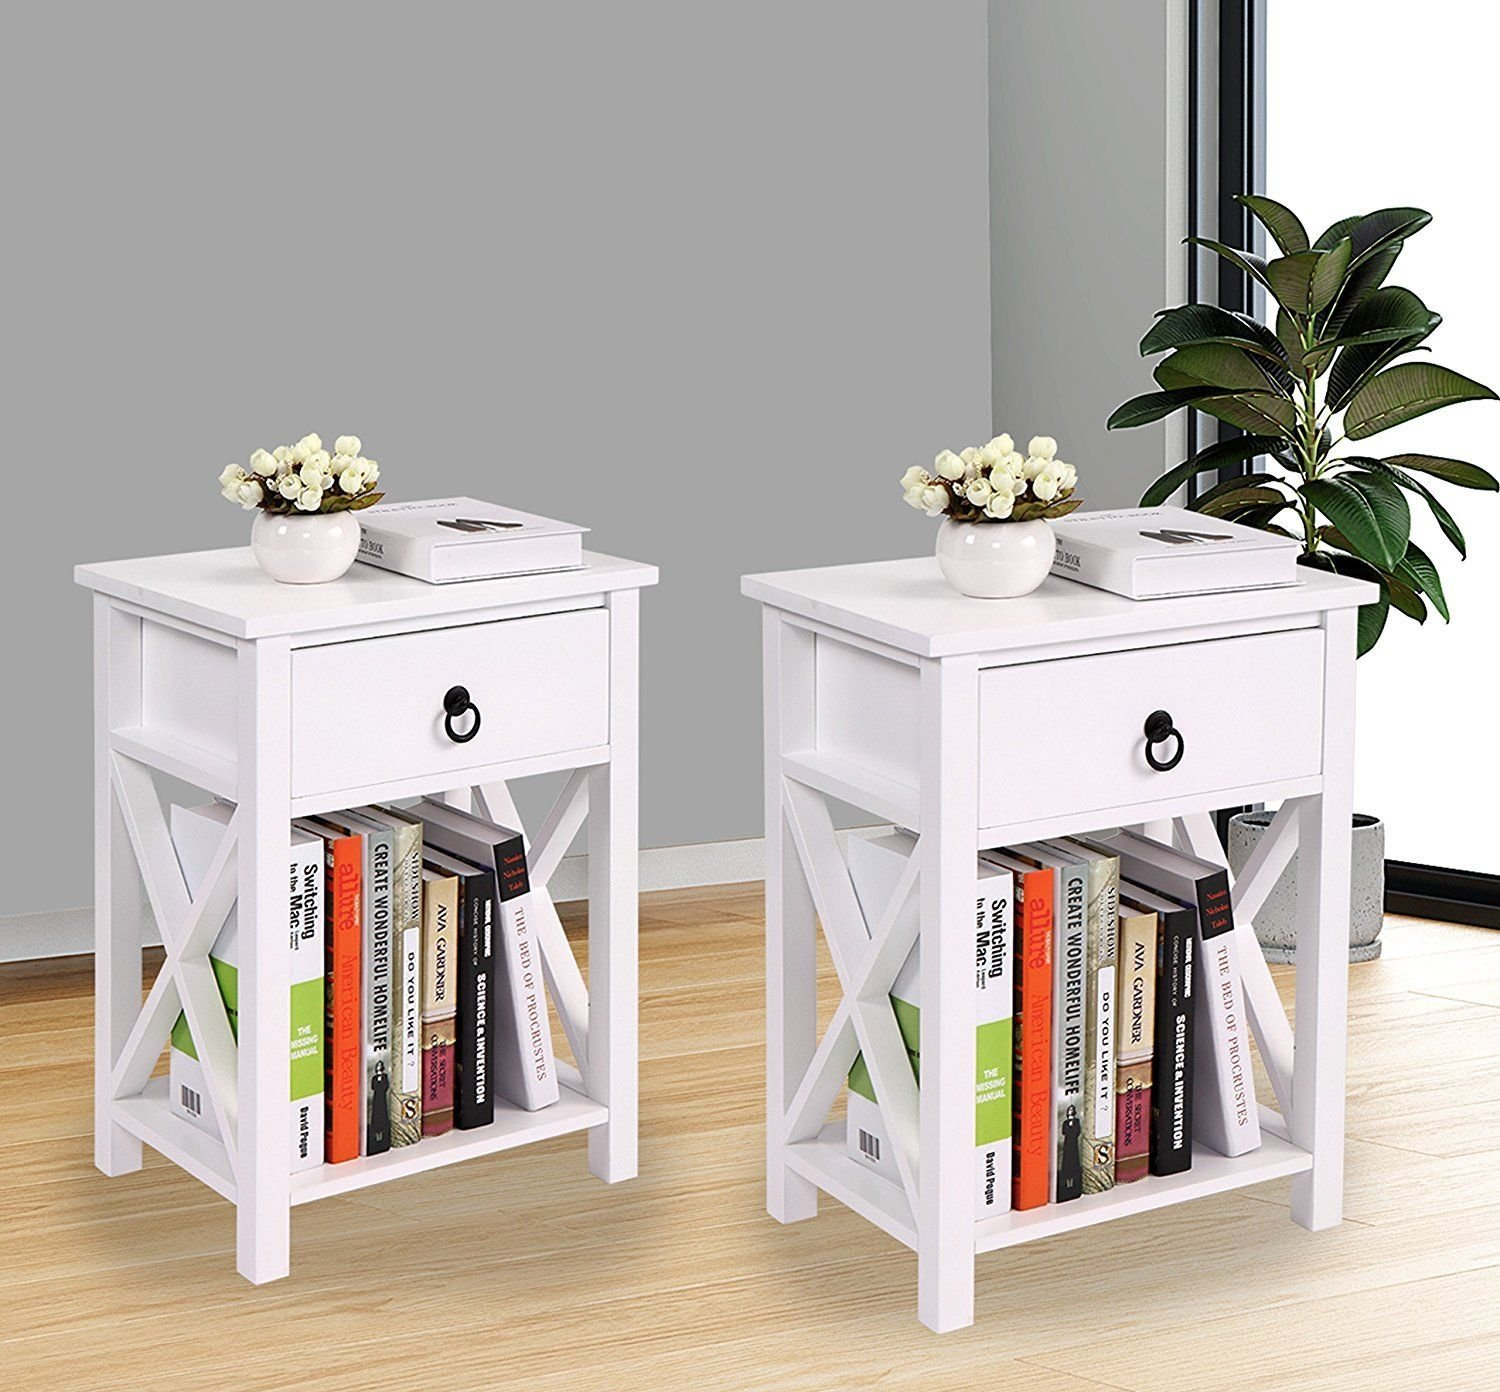 lazymoon set mdf nightstand table design kids winsome ava accent with drawer black finish room end side home storage white kitchen dining clearance couches night stands ikea